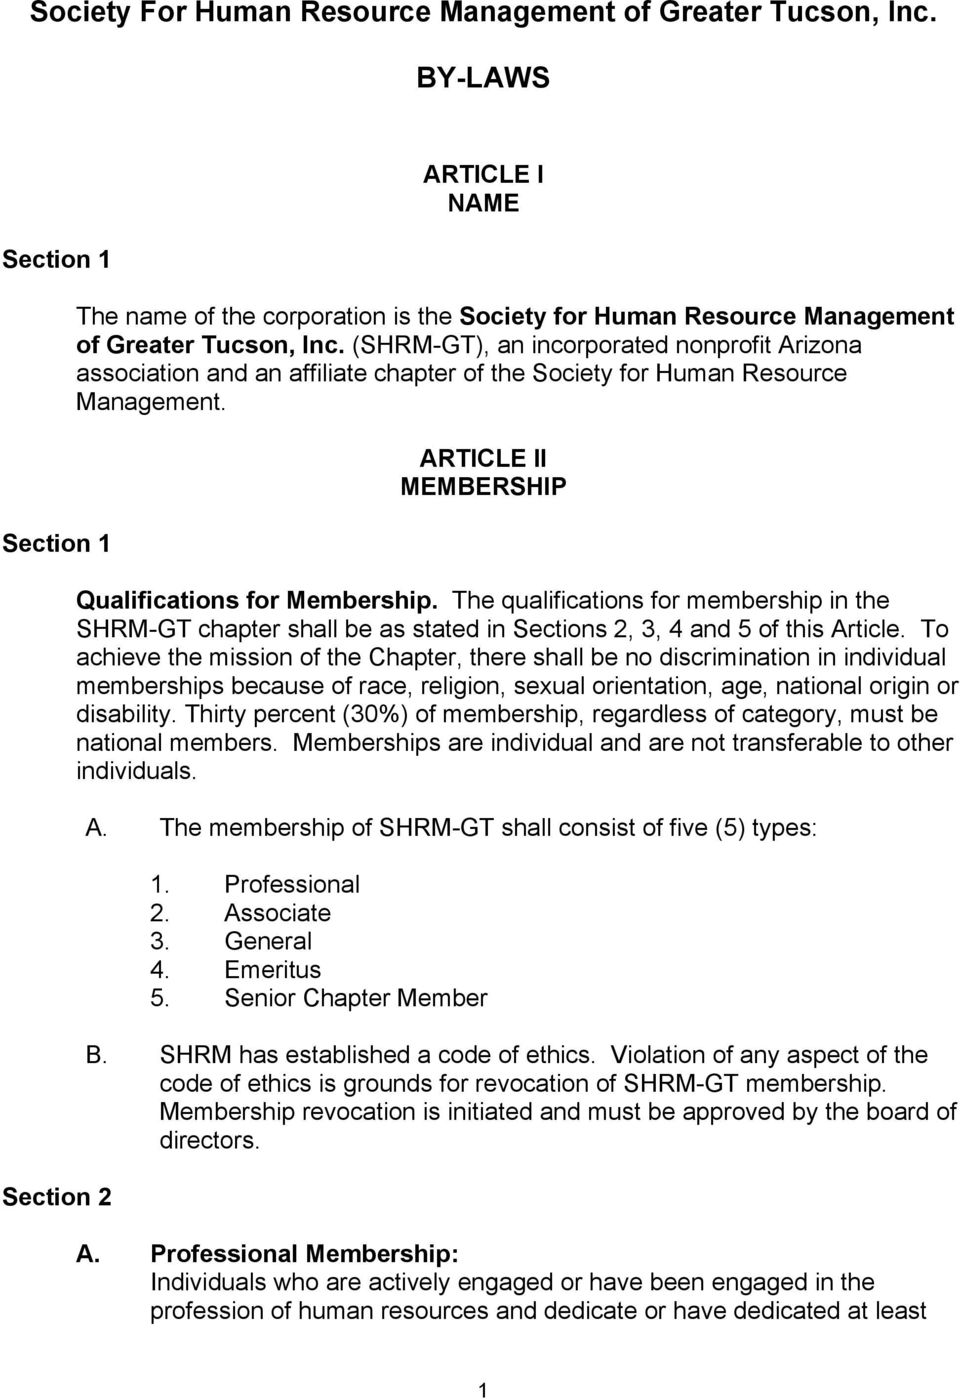 The qualifications for membership in the SHRM-GT chapter shall be as stated in Sections 2, 3, 4 and 5 of this Article.